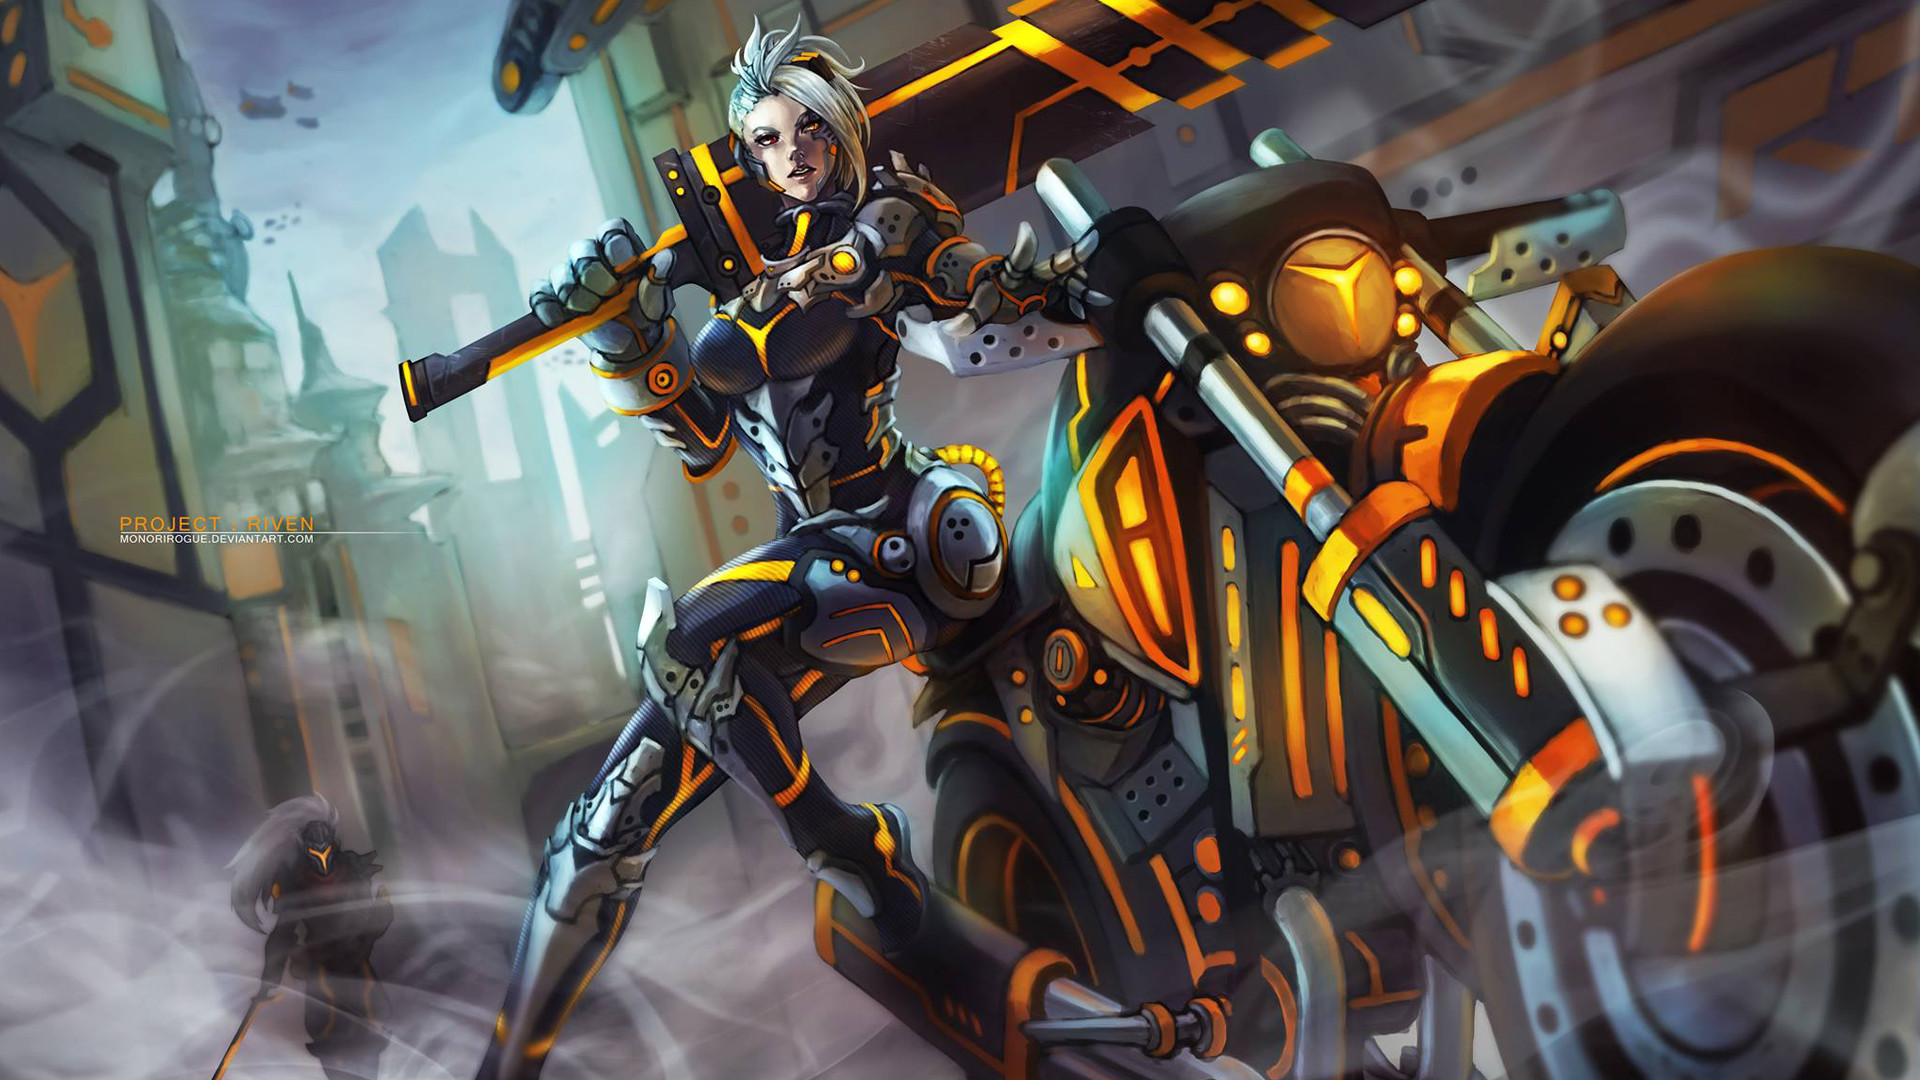 1920x1080 project-riven-league-of-legends-skin-art-.jpg